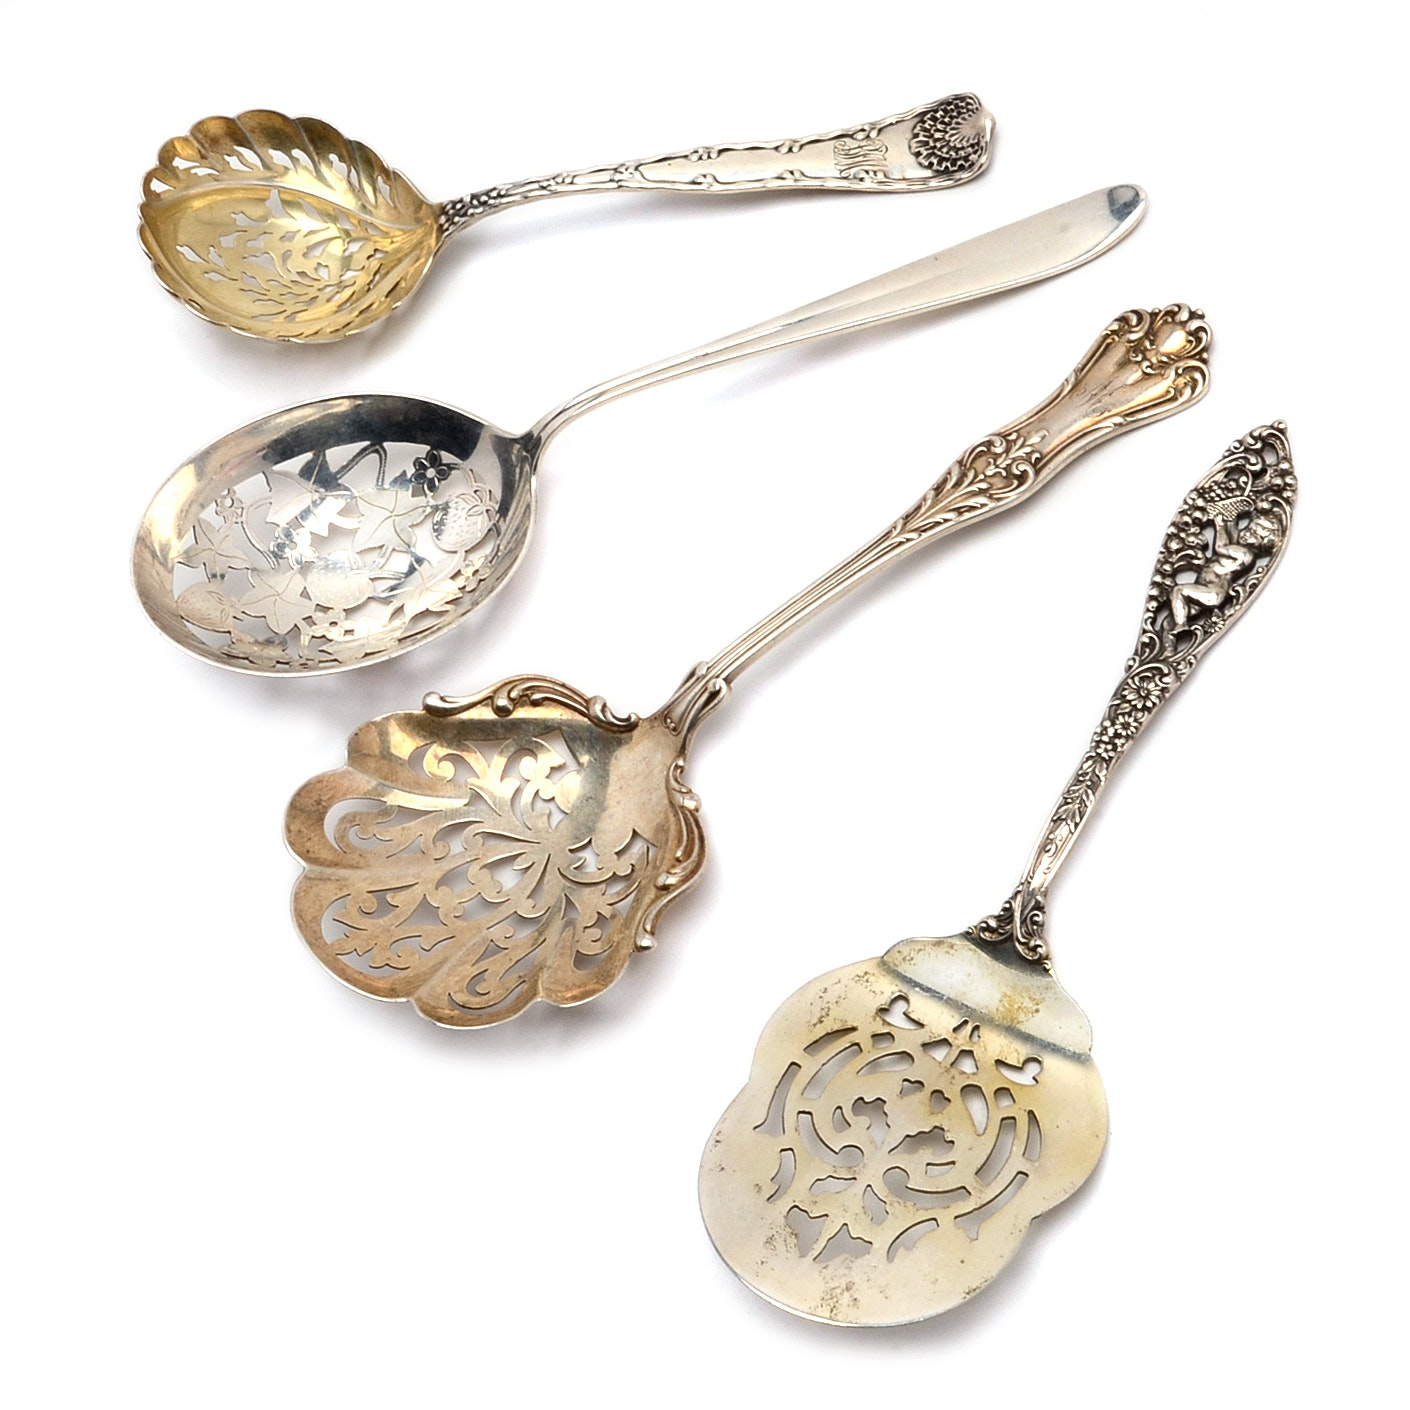 Sterling Silver Serving Utensils with Dominick & Haff